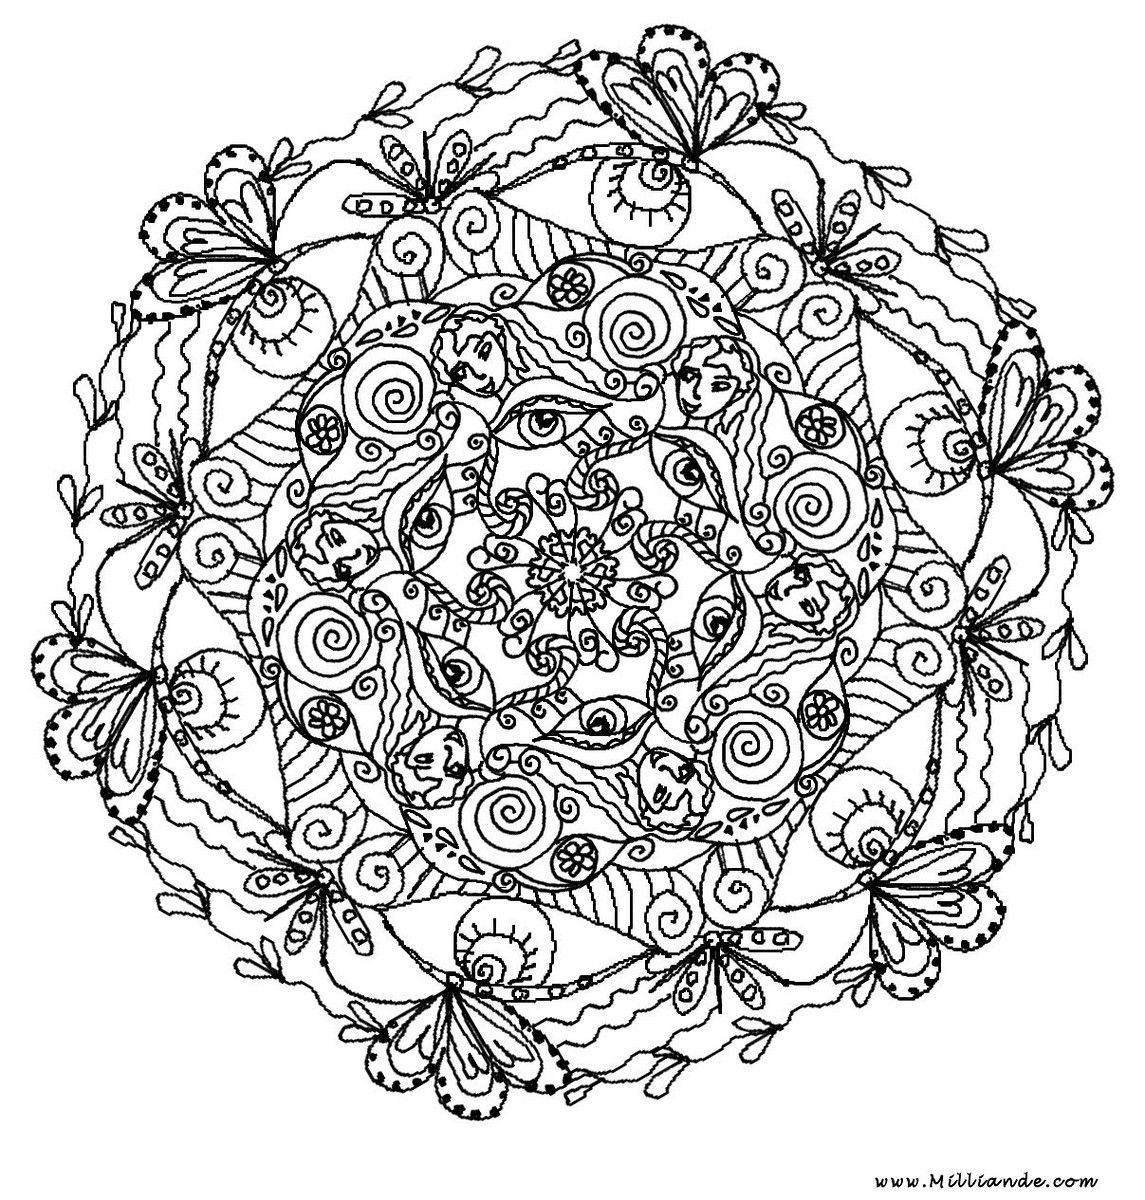 Free coloring page creator